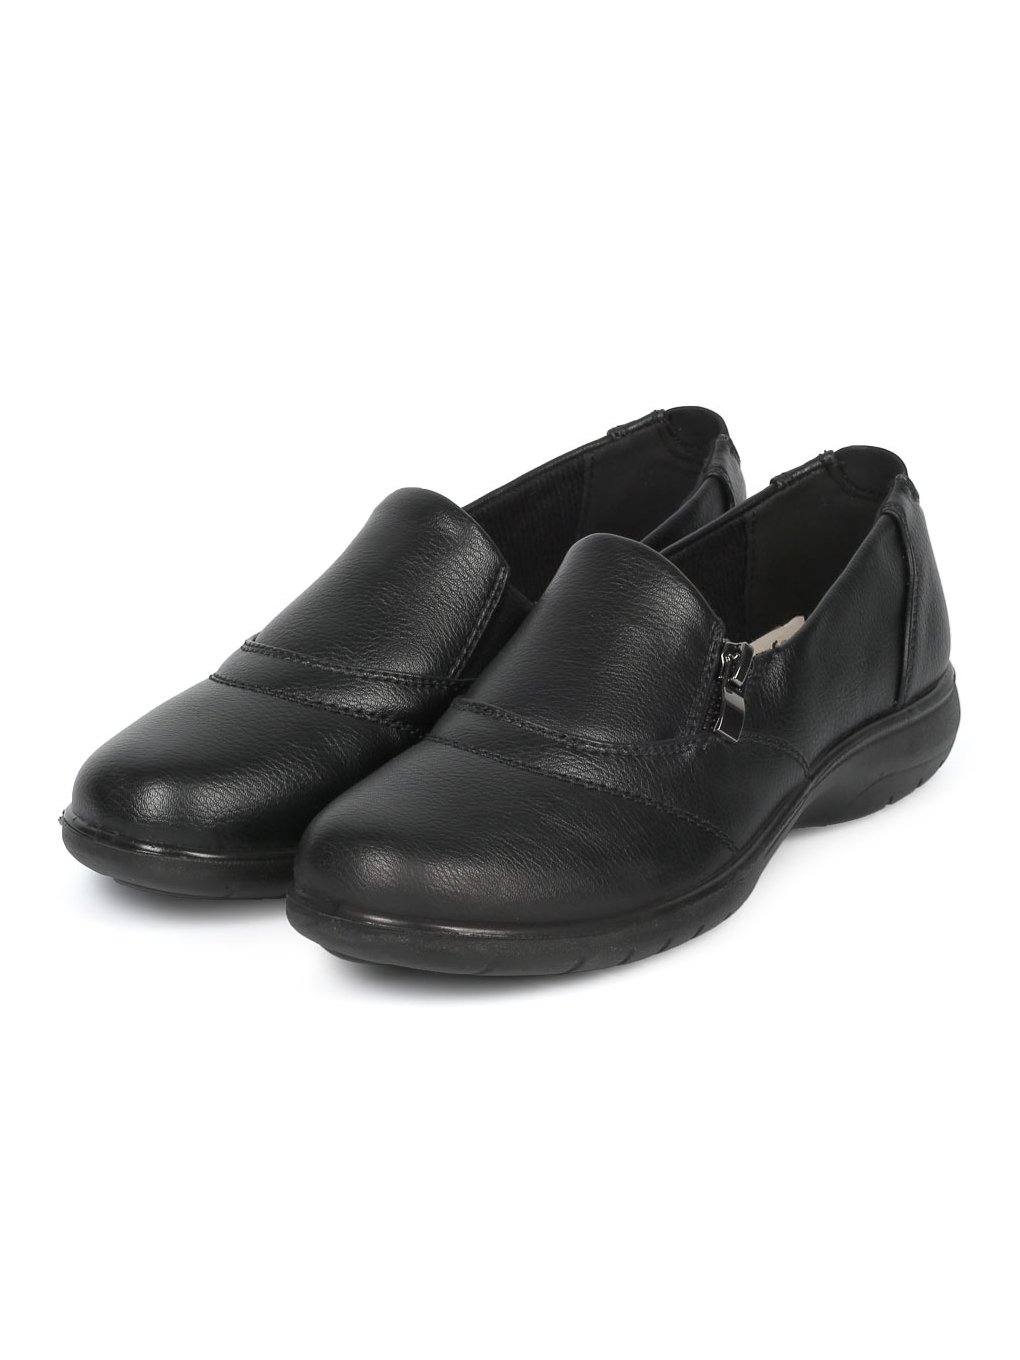 Alrisco Women Leatherette Round Toe Elevated Heel Work Loafer HD92 - Black Leatherette (Size: 7.0) by Alrisco (Image #5)